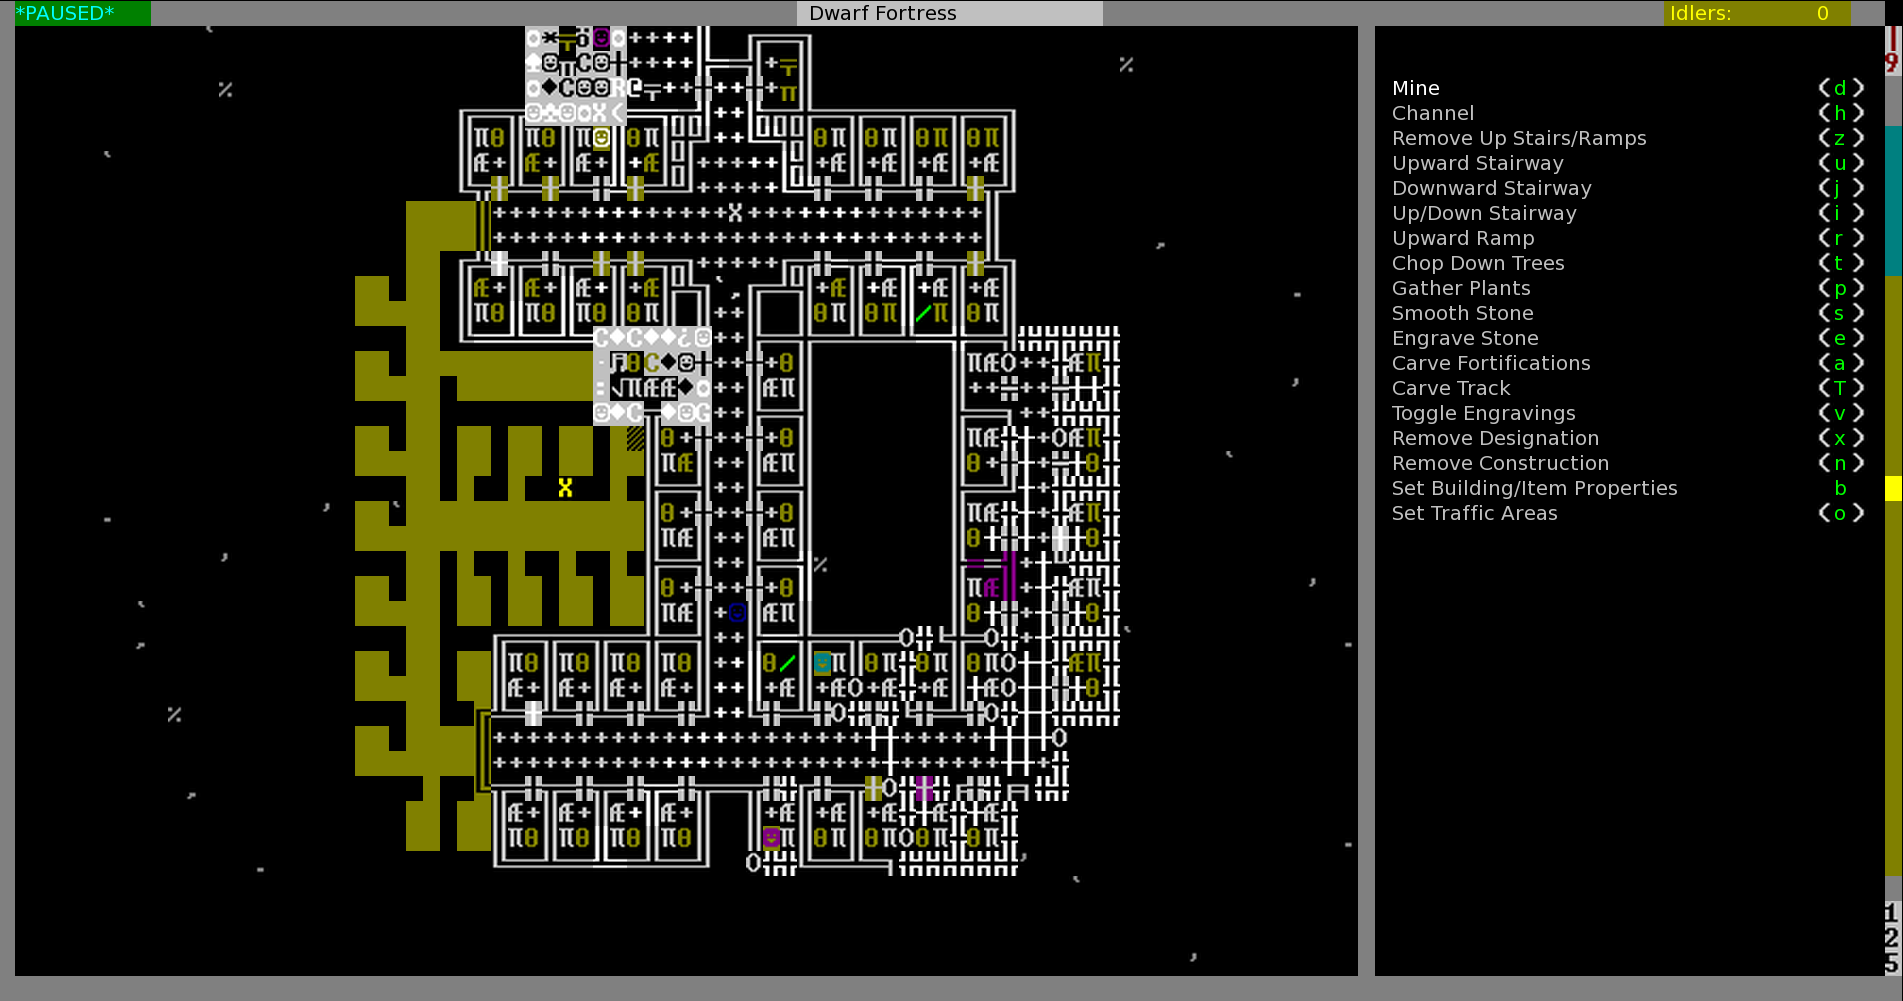 I Tried To Play Dwarf Fortress Again